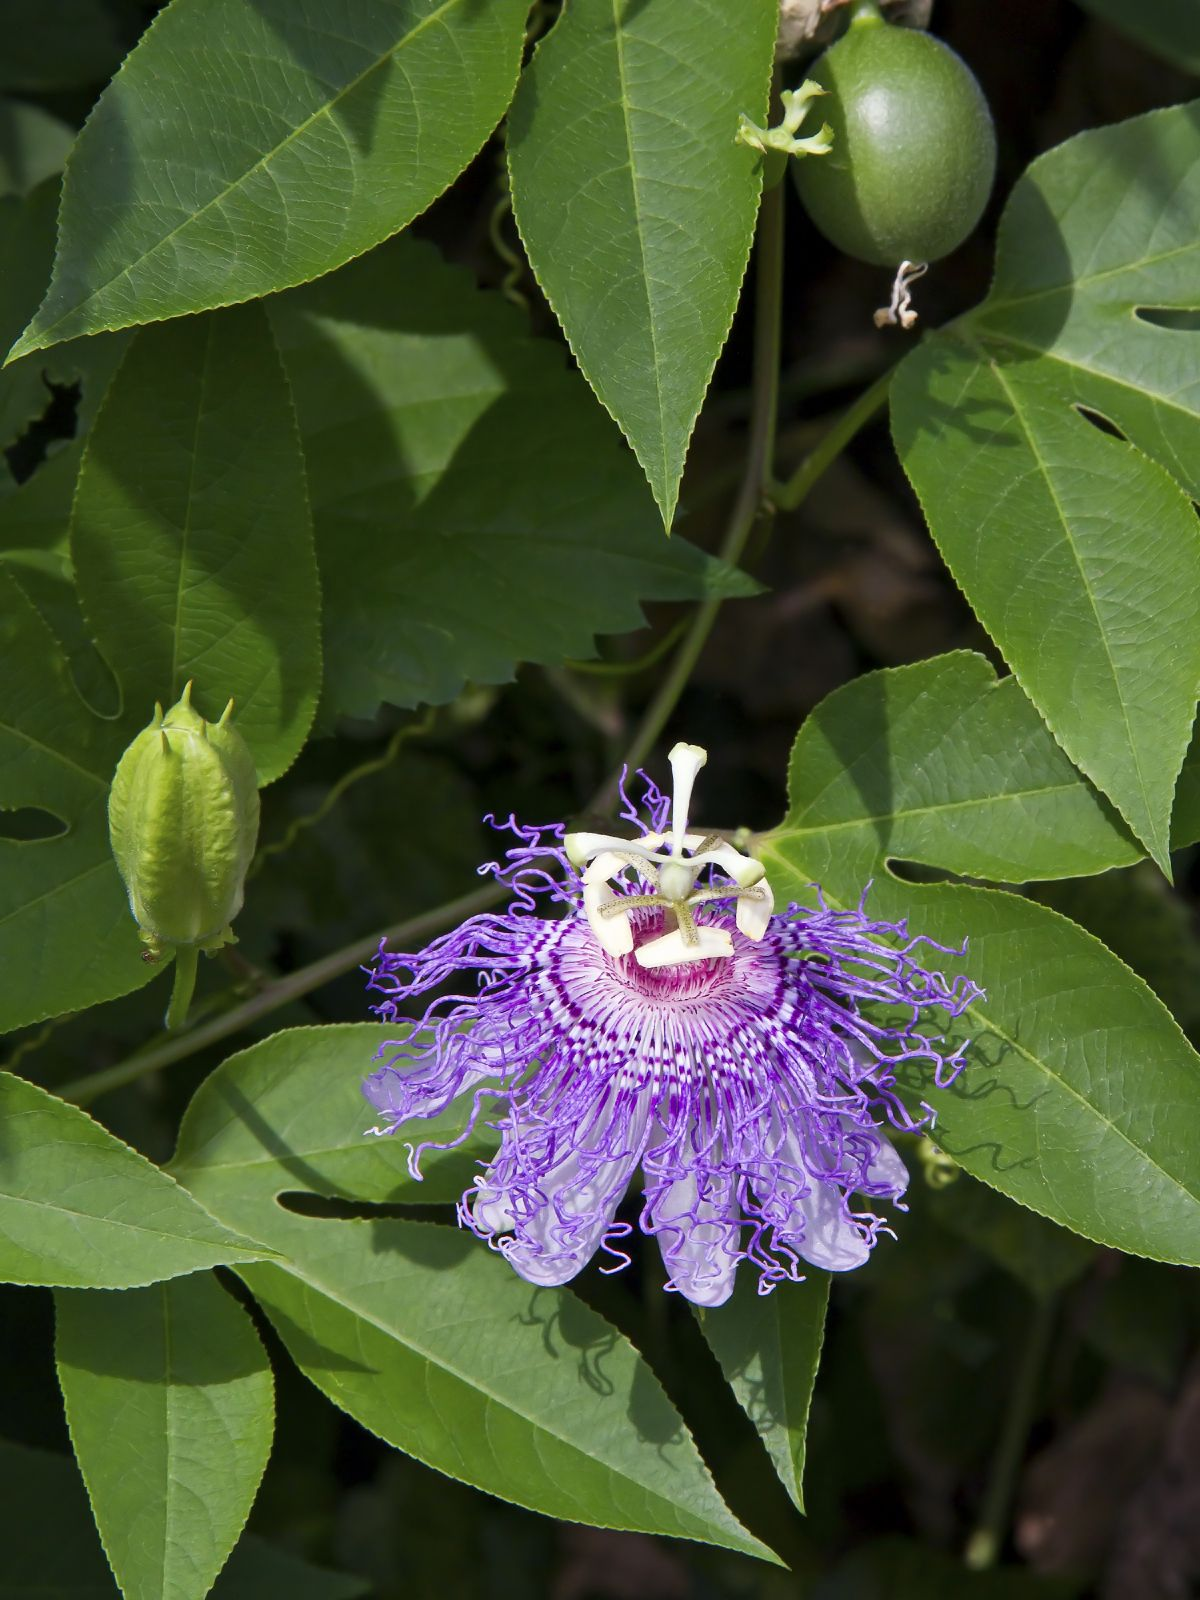 Passion Flower Not Fruiting Why Passion Vine Flowers But Has No Fruit Passion Fruit Flower Passion Fruit Plant Flowering Vines